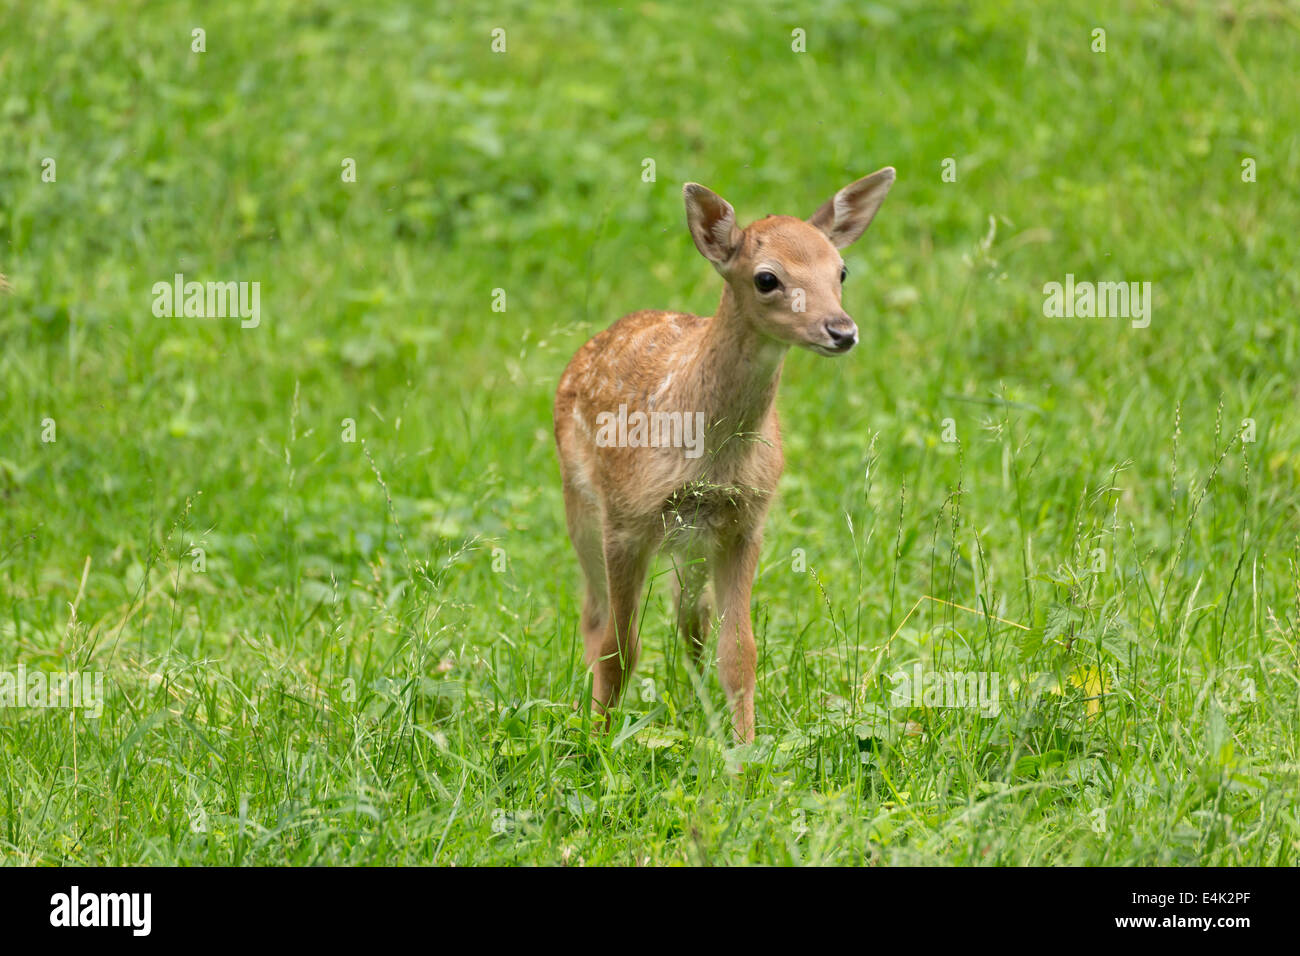 Young toddler fawn fallow deer kids playing on green meadow grassland in forest in summer Stock Photo